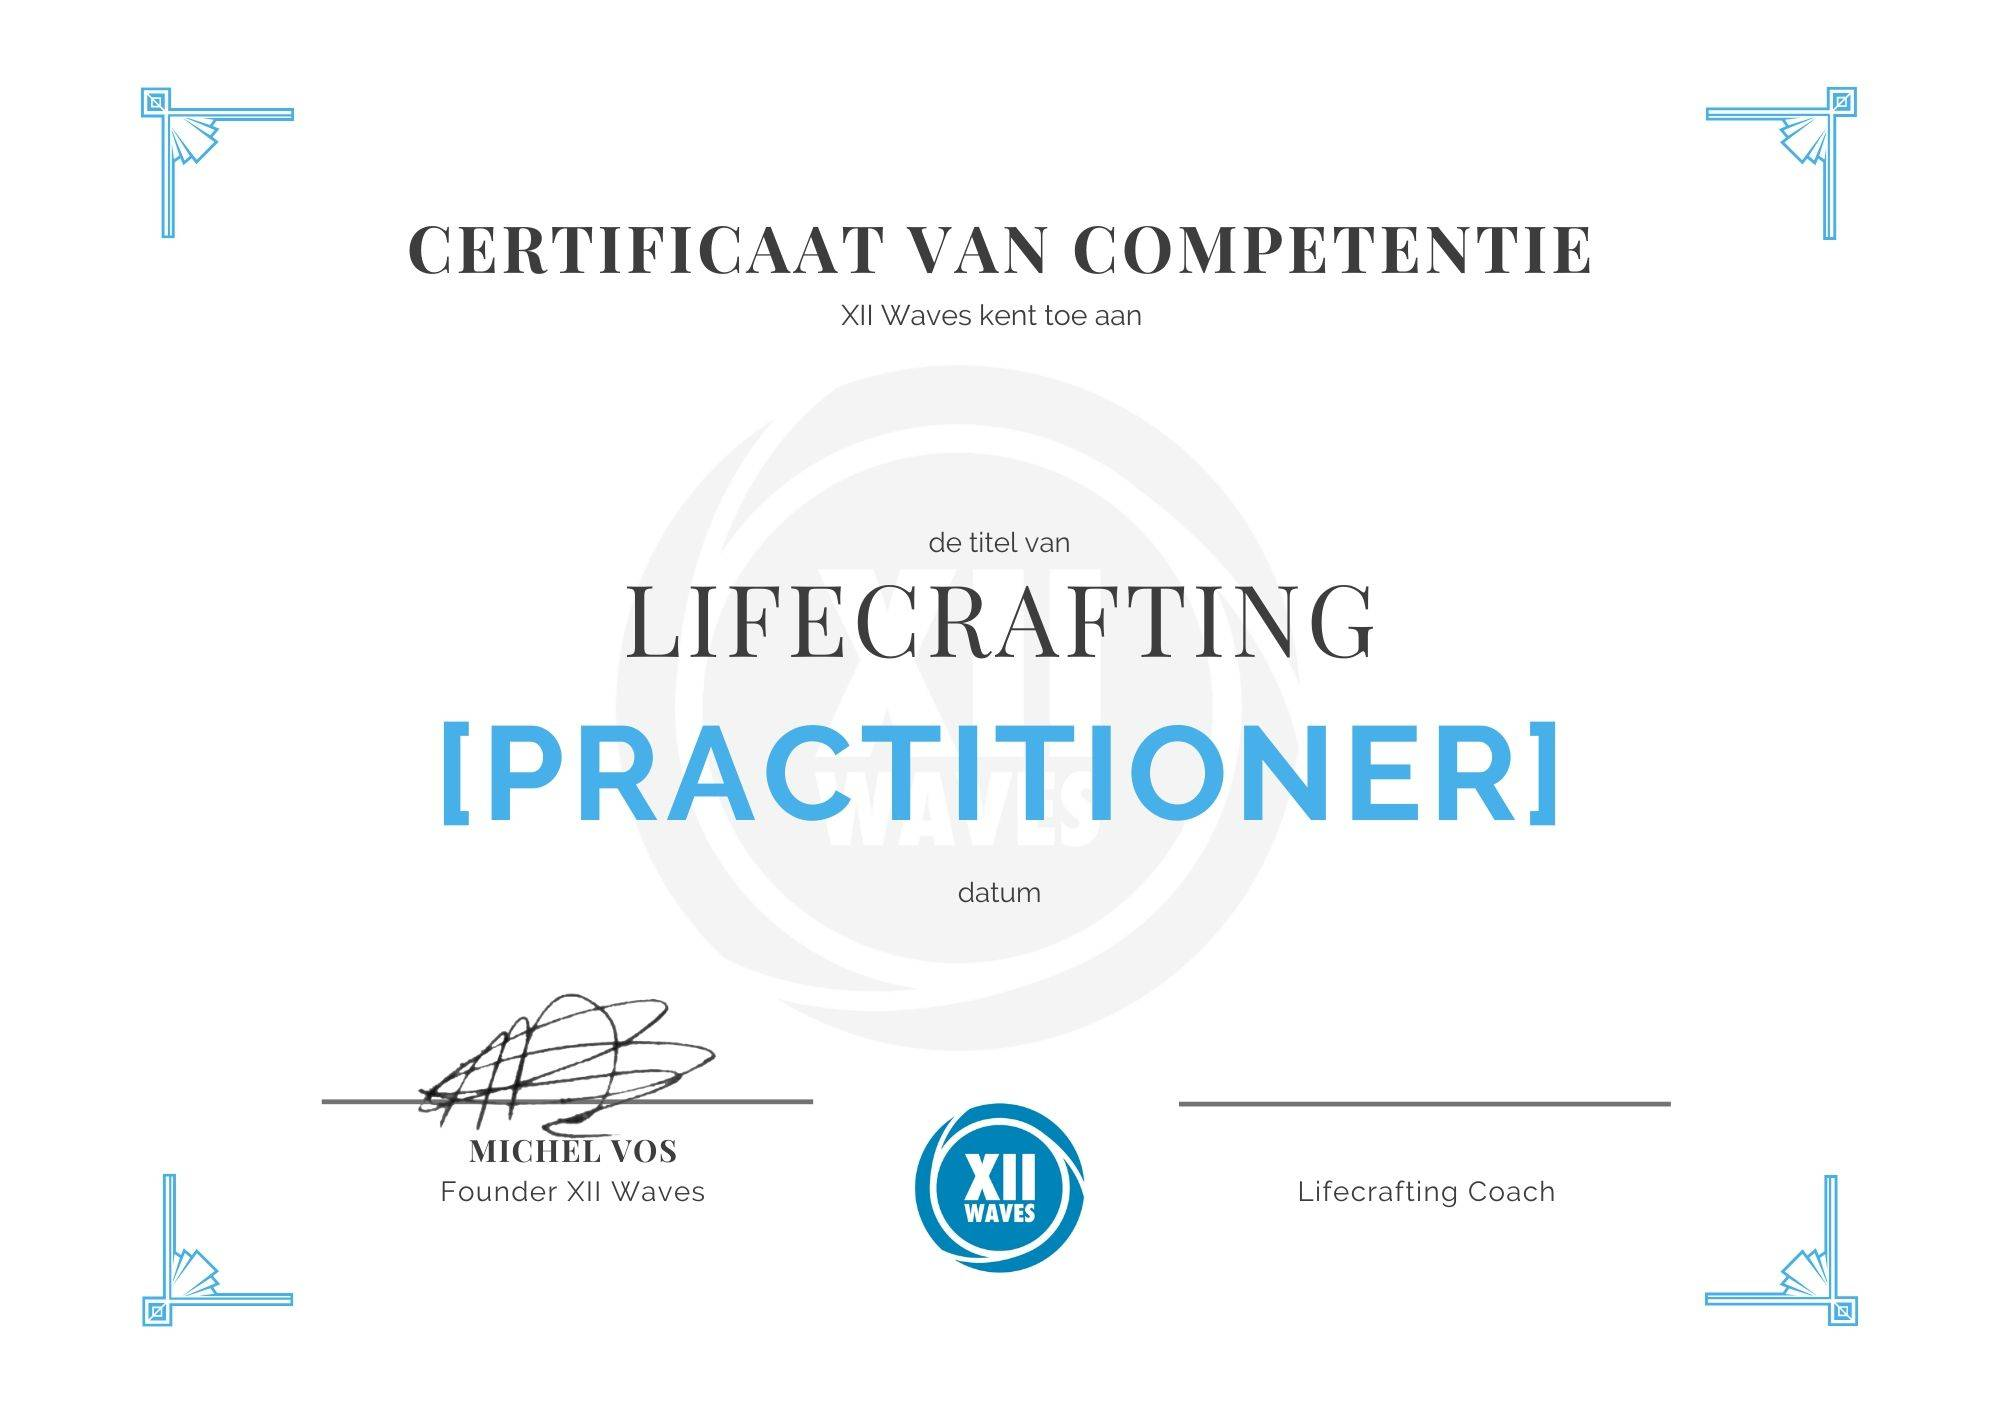 lifecrafting practitioner xii waves academy michel vos